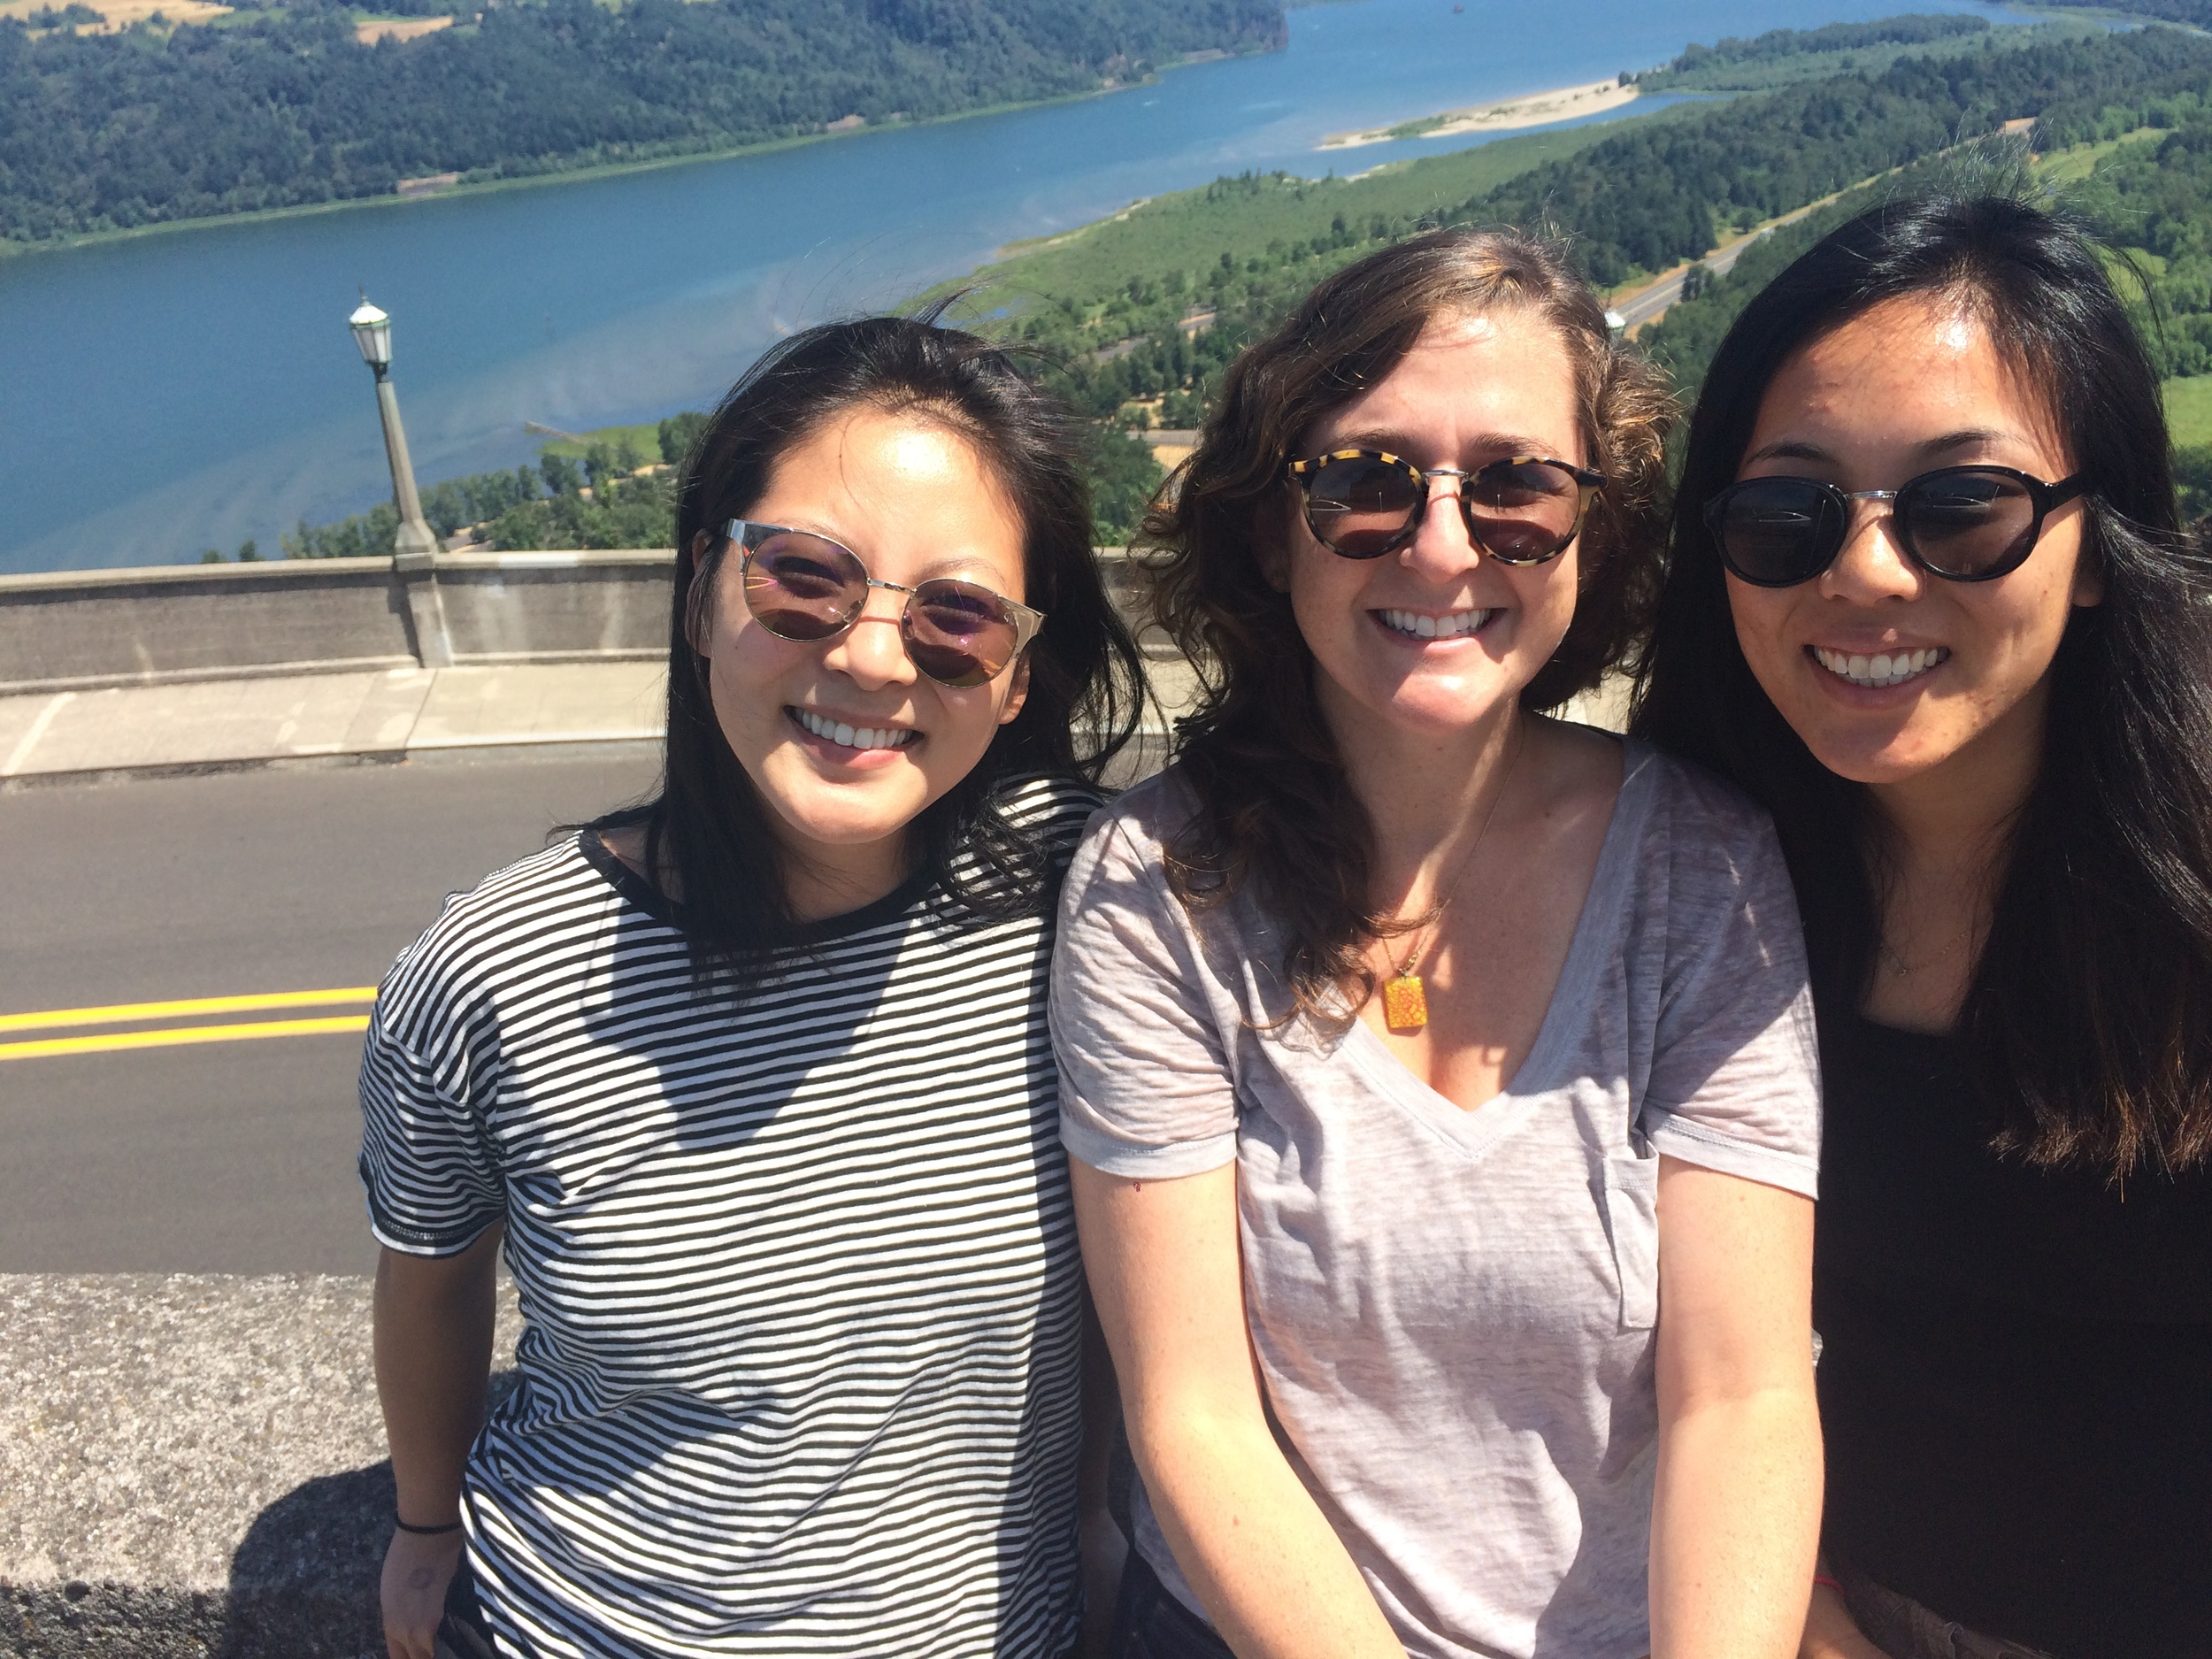 Using the selfie stick at the Vista House lookout